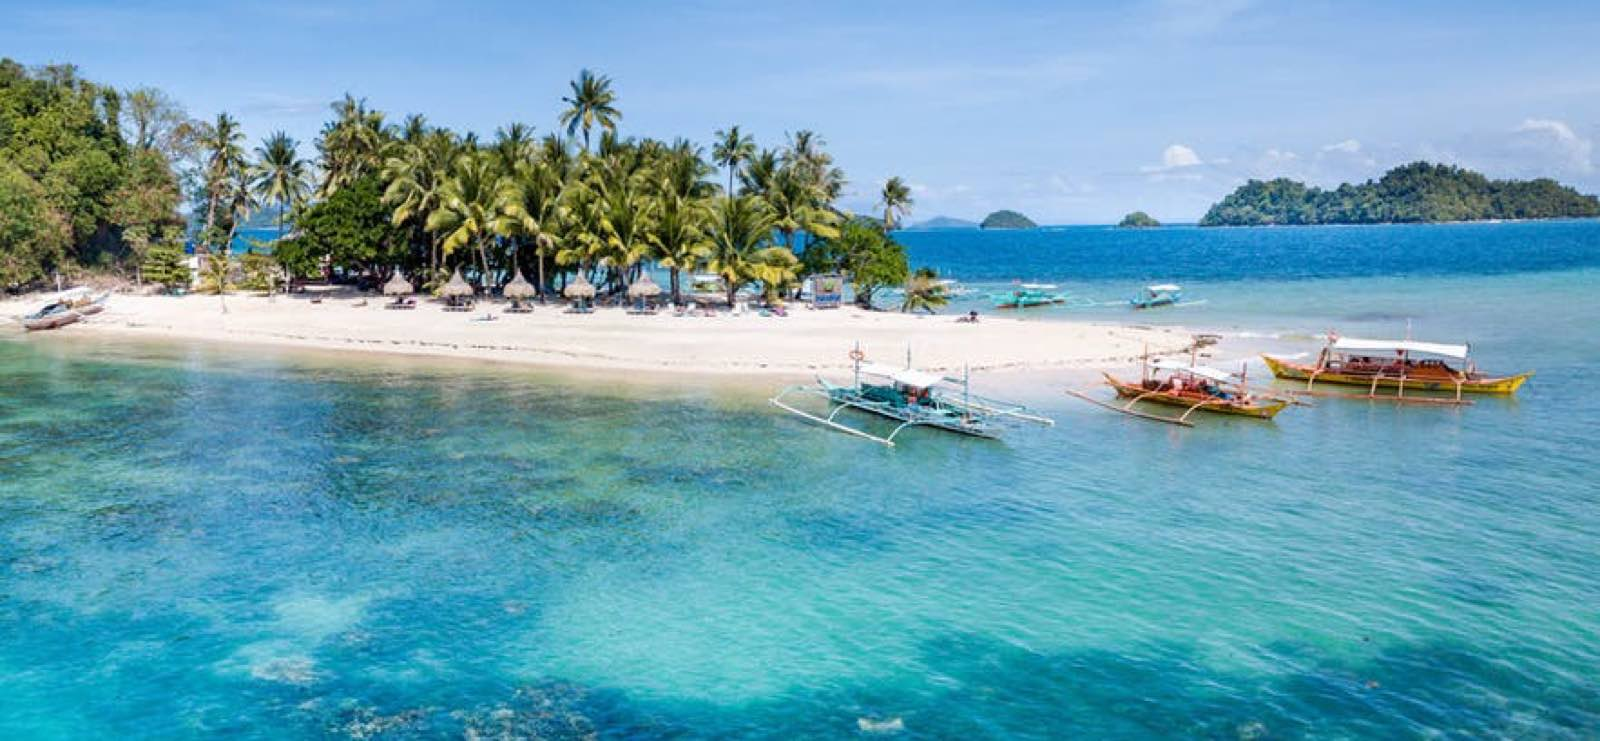 Palawan - perfect area for island-hopping in the Philippines